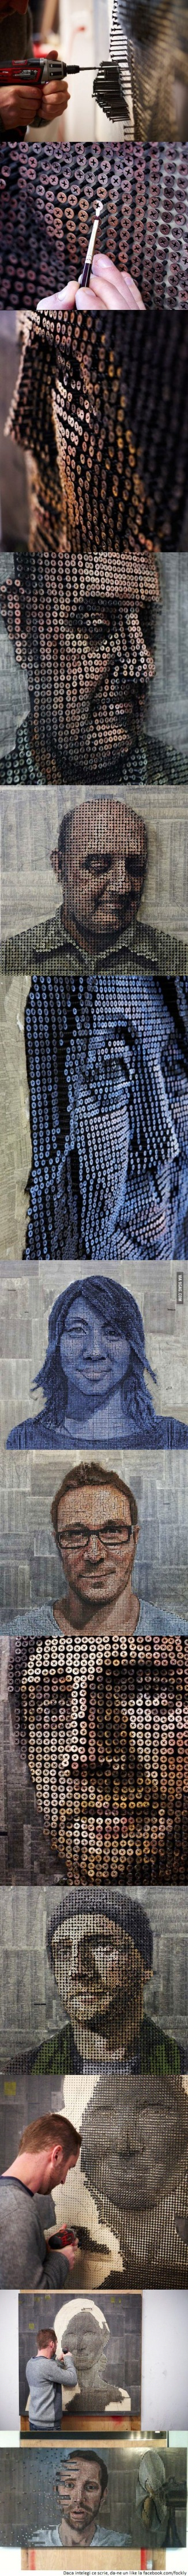 9GAG - Amazing 3D portraits made out of screws by Andrew Myers